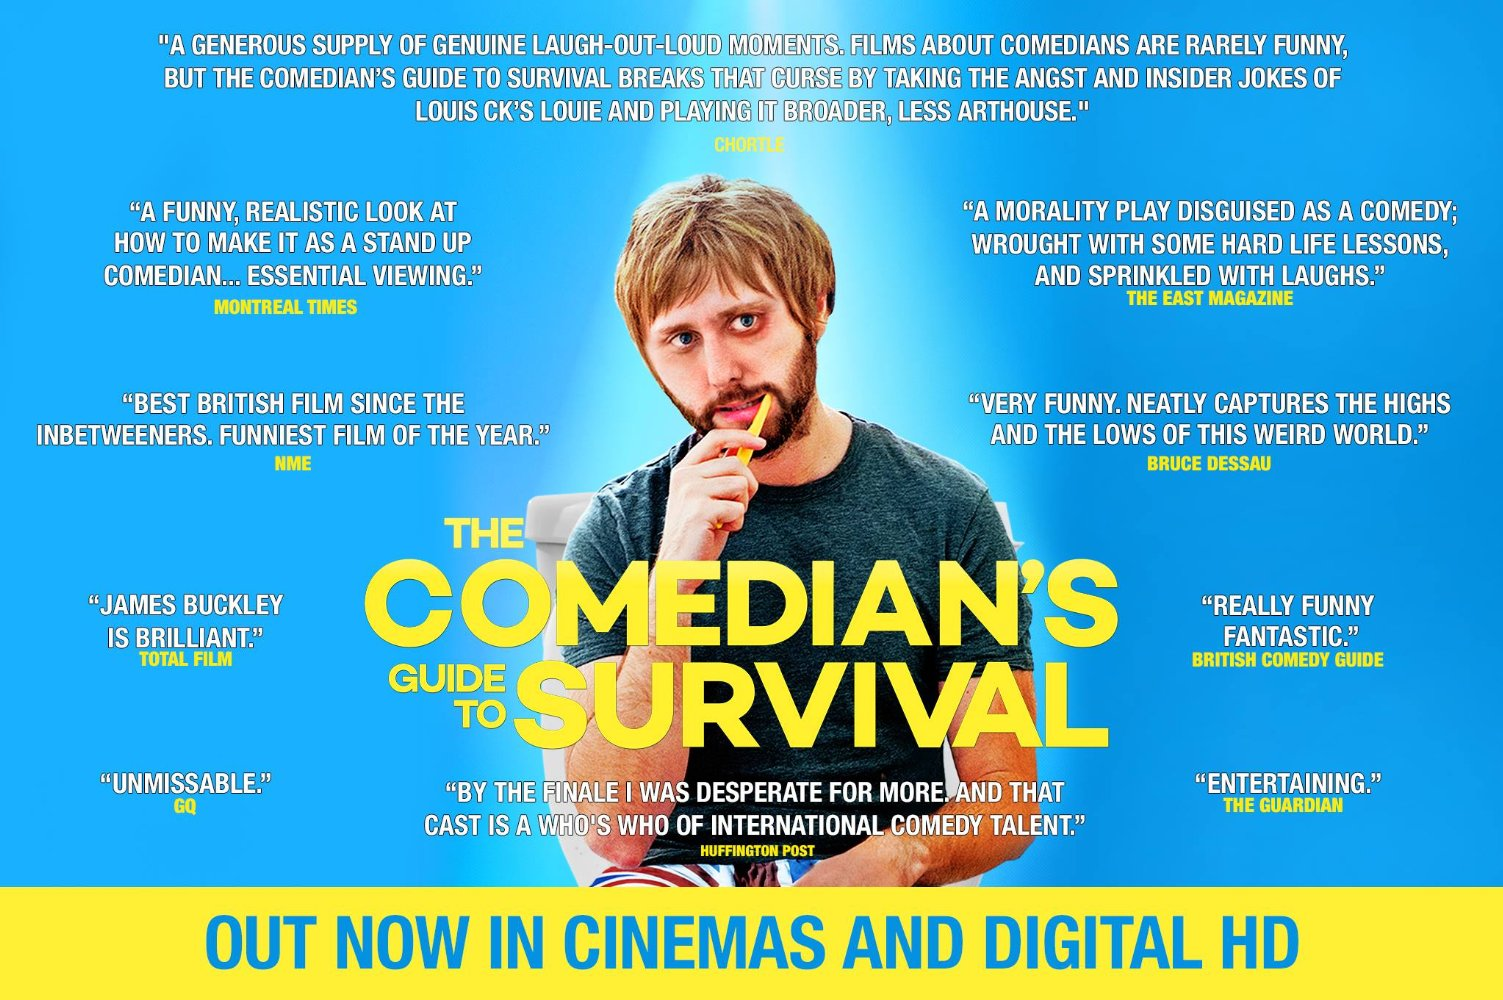 The Comedian's Guide to Survival